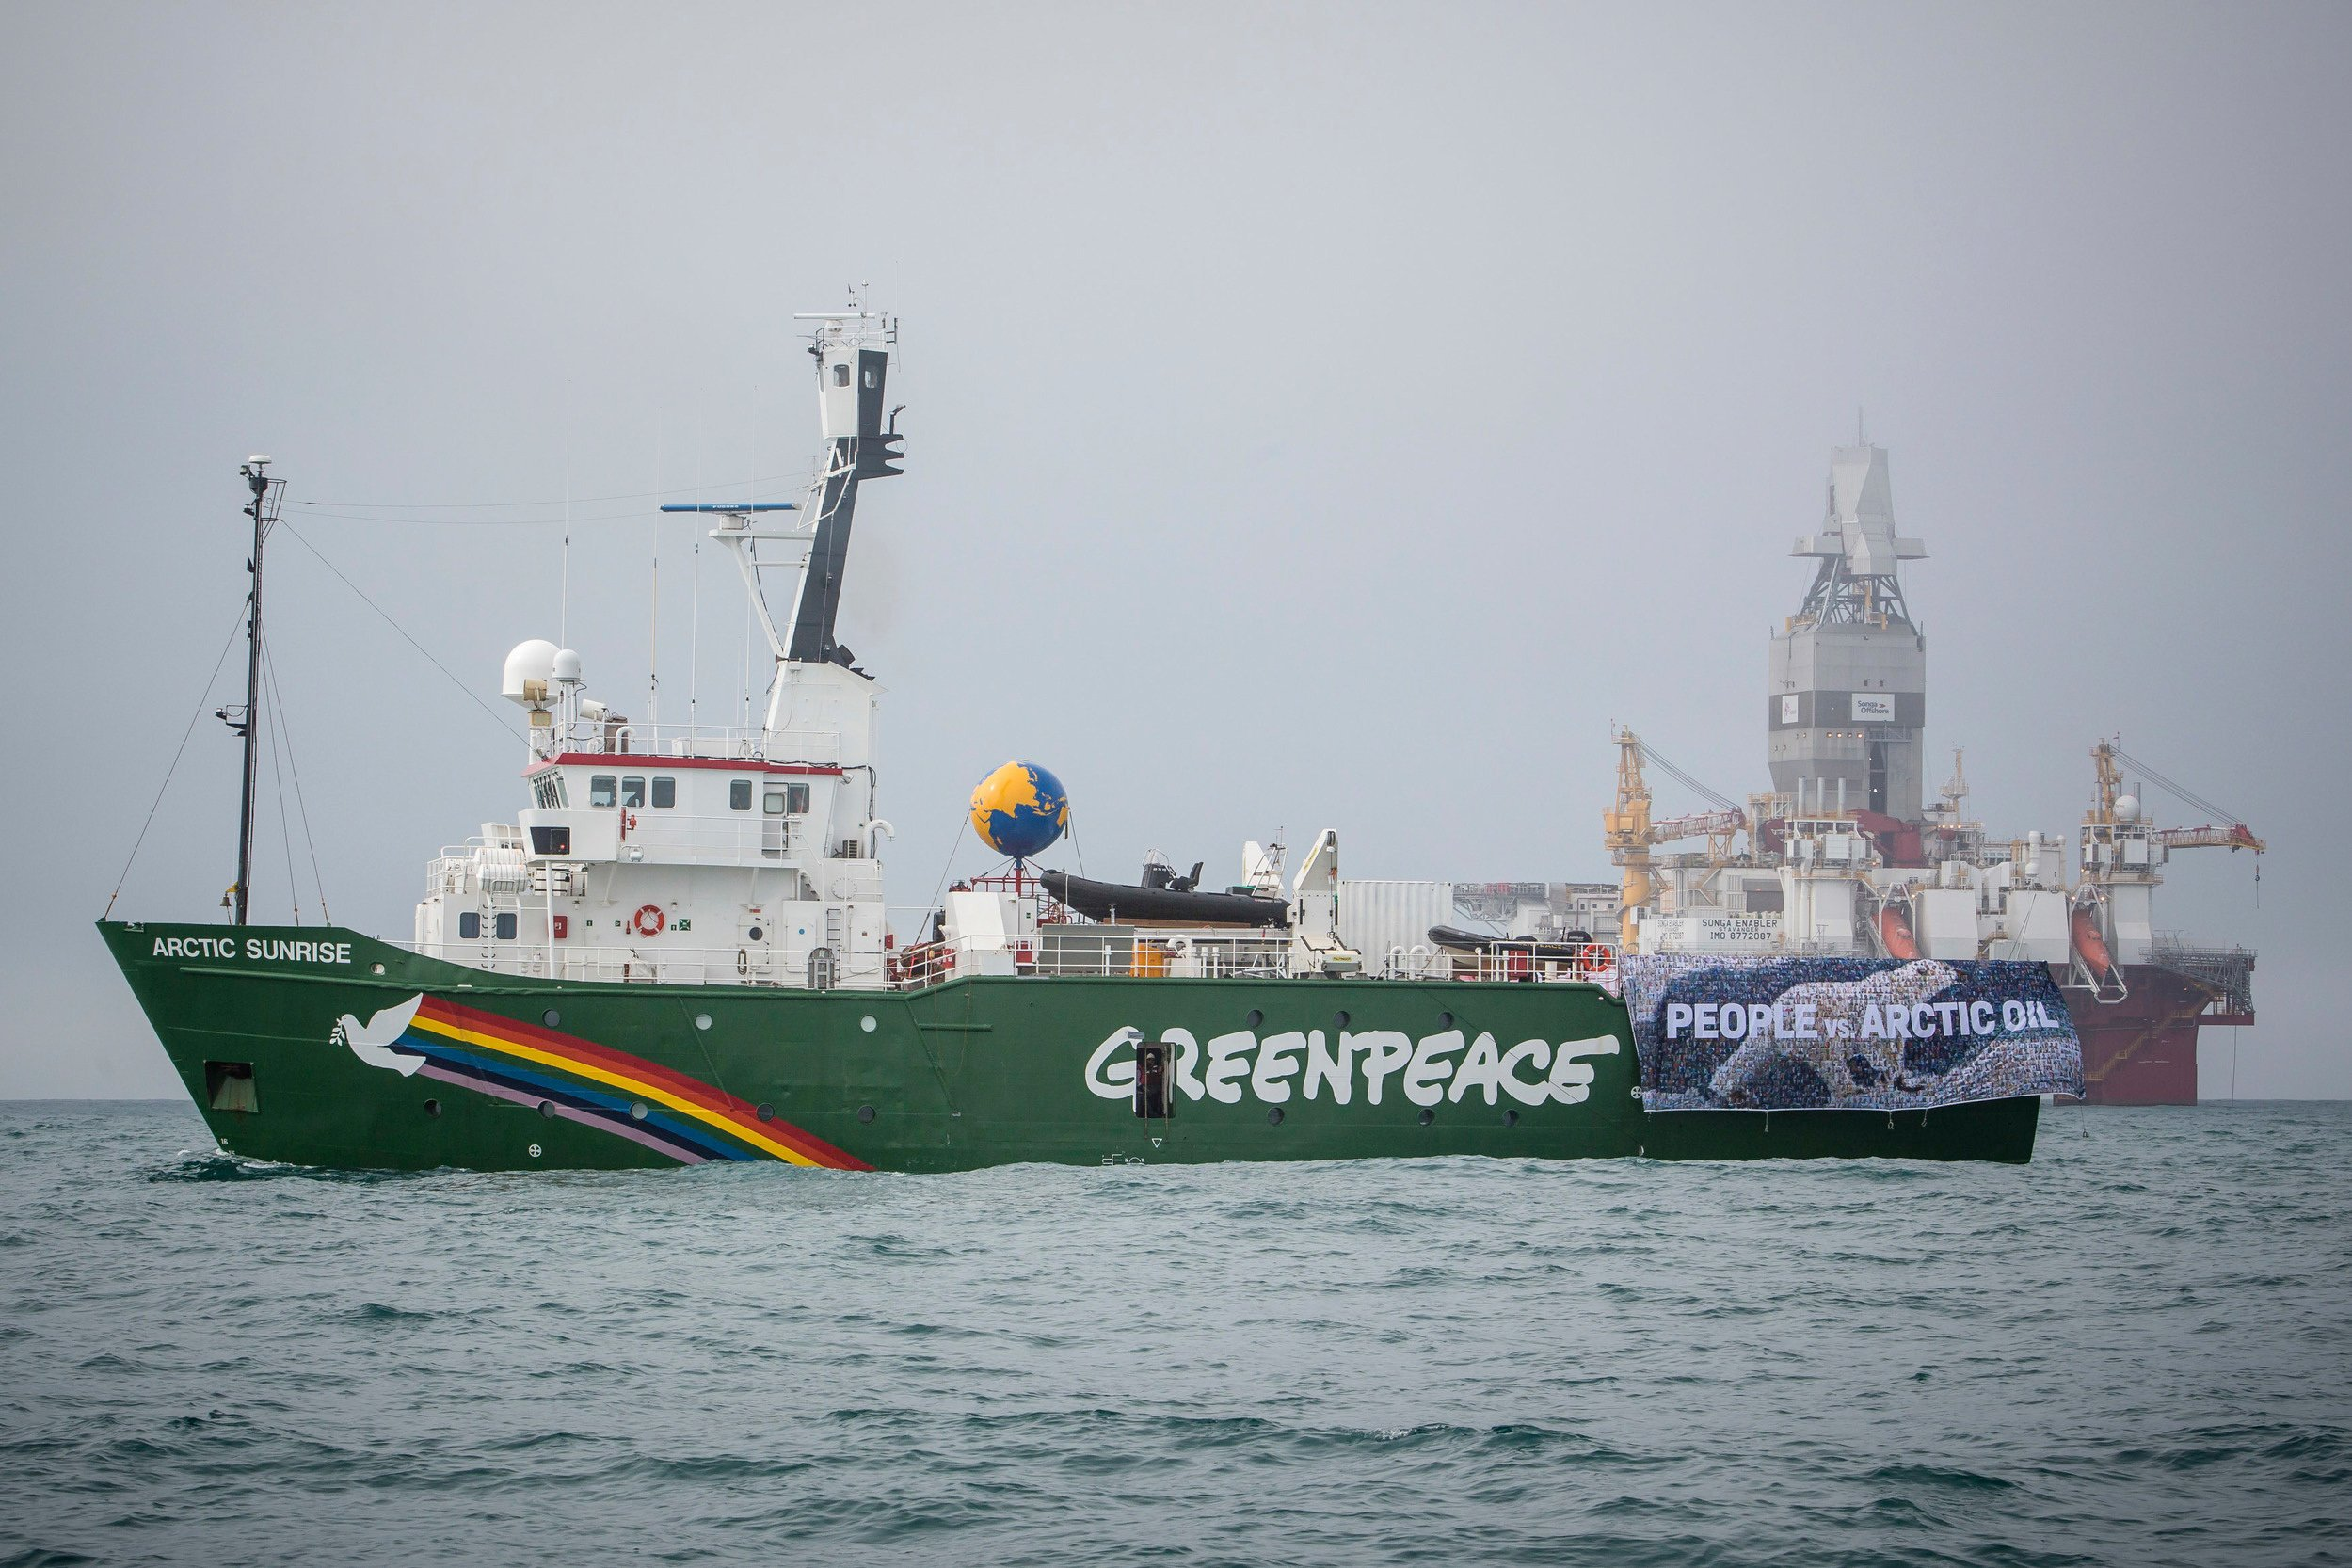 Norway authorities stop Greenpeace protests at Arctic well